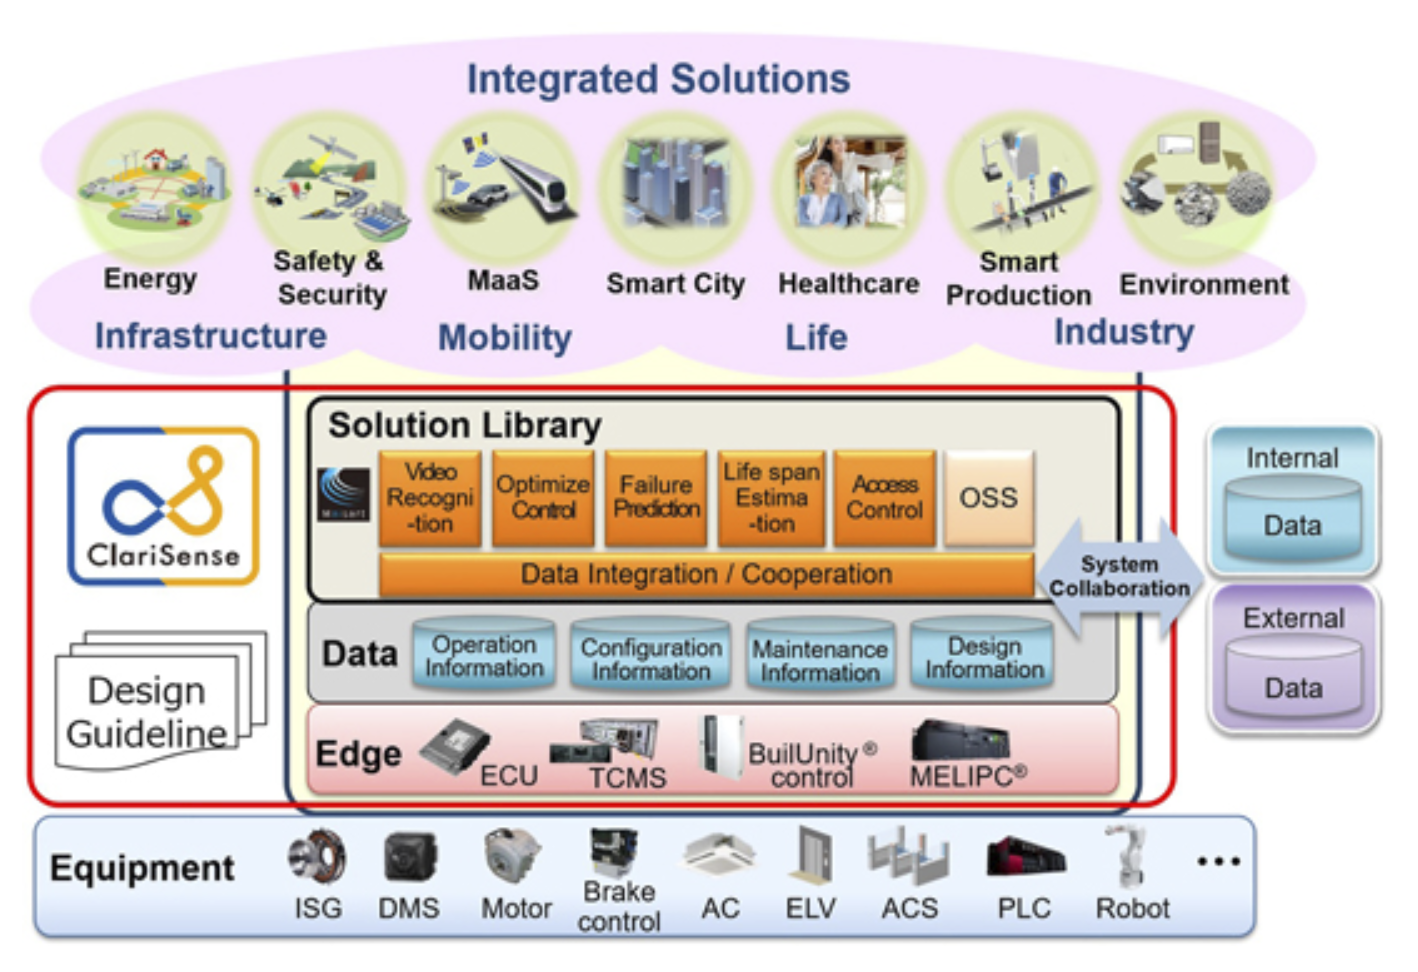 Mitsubishi integrates IoT to accelerate development